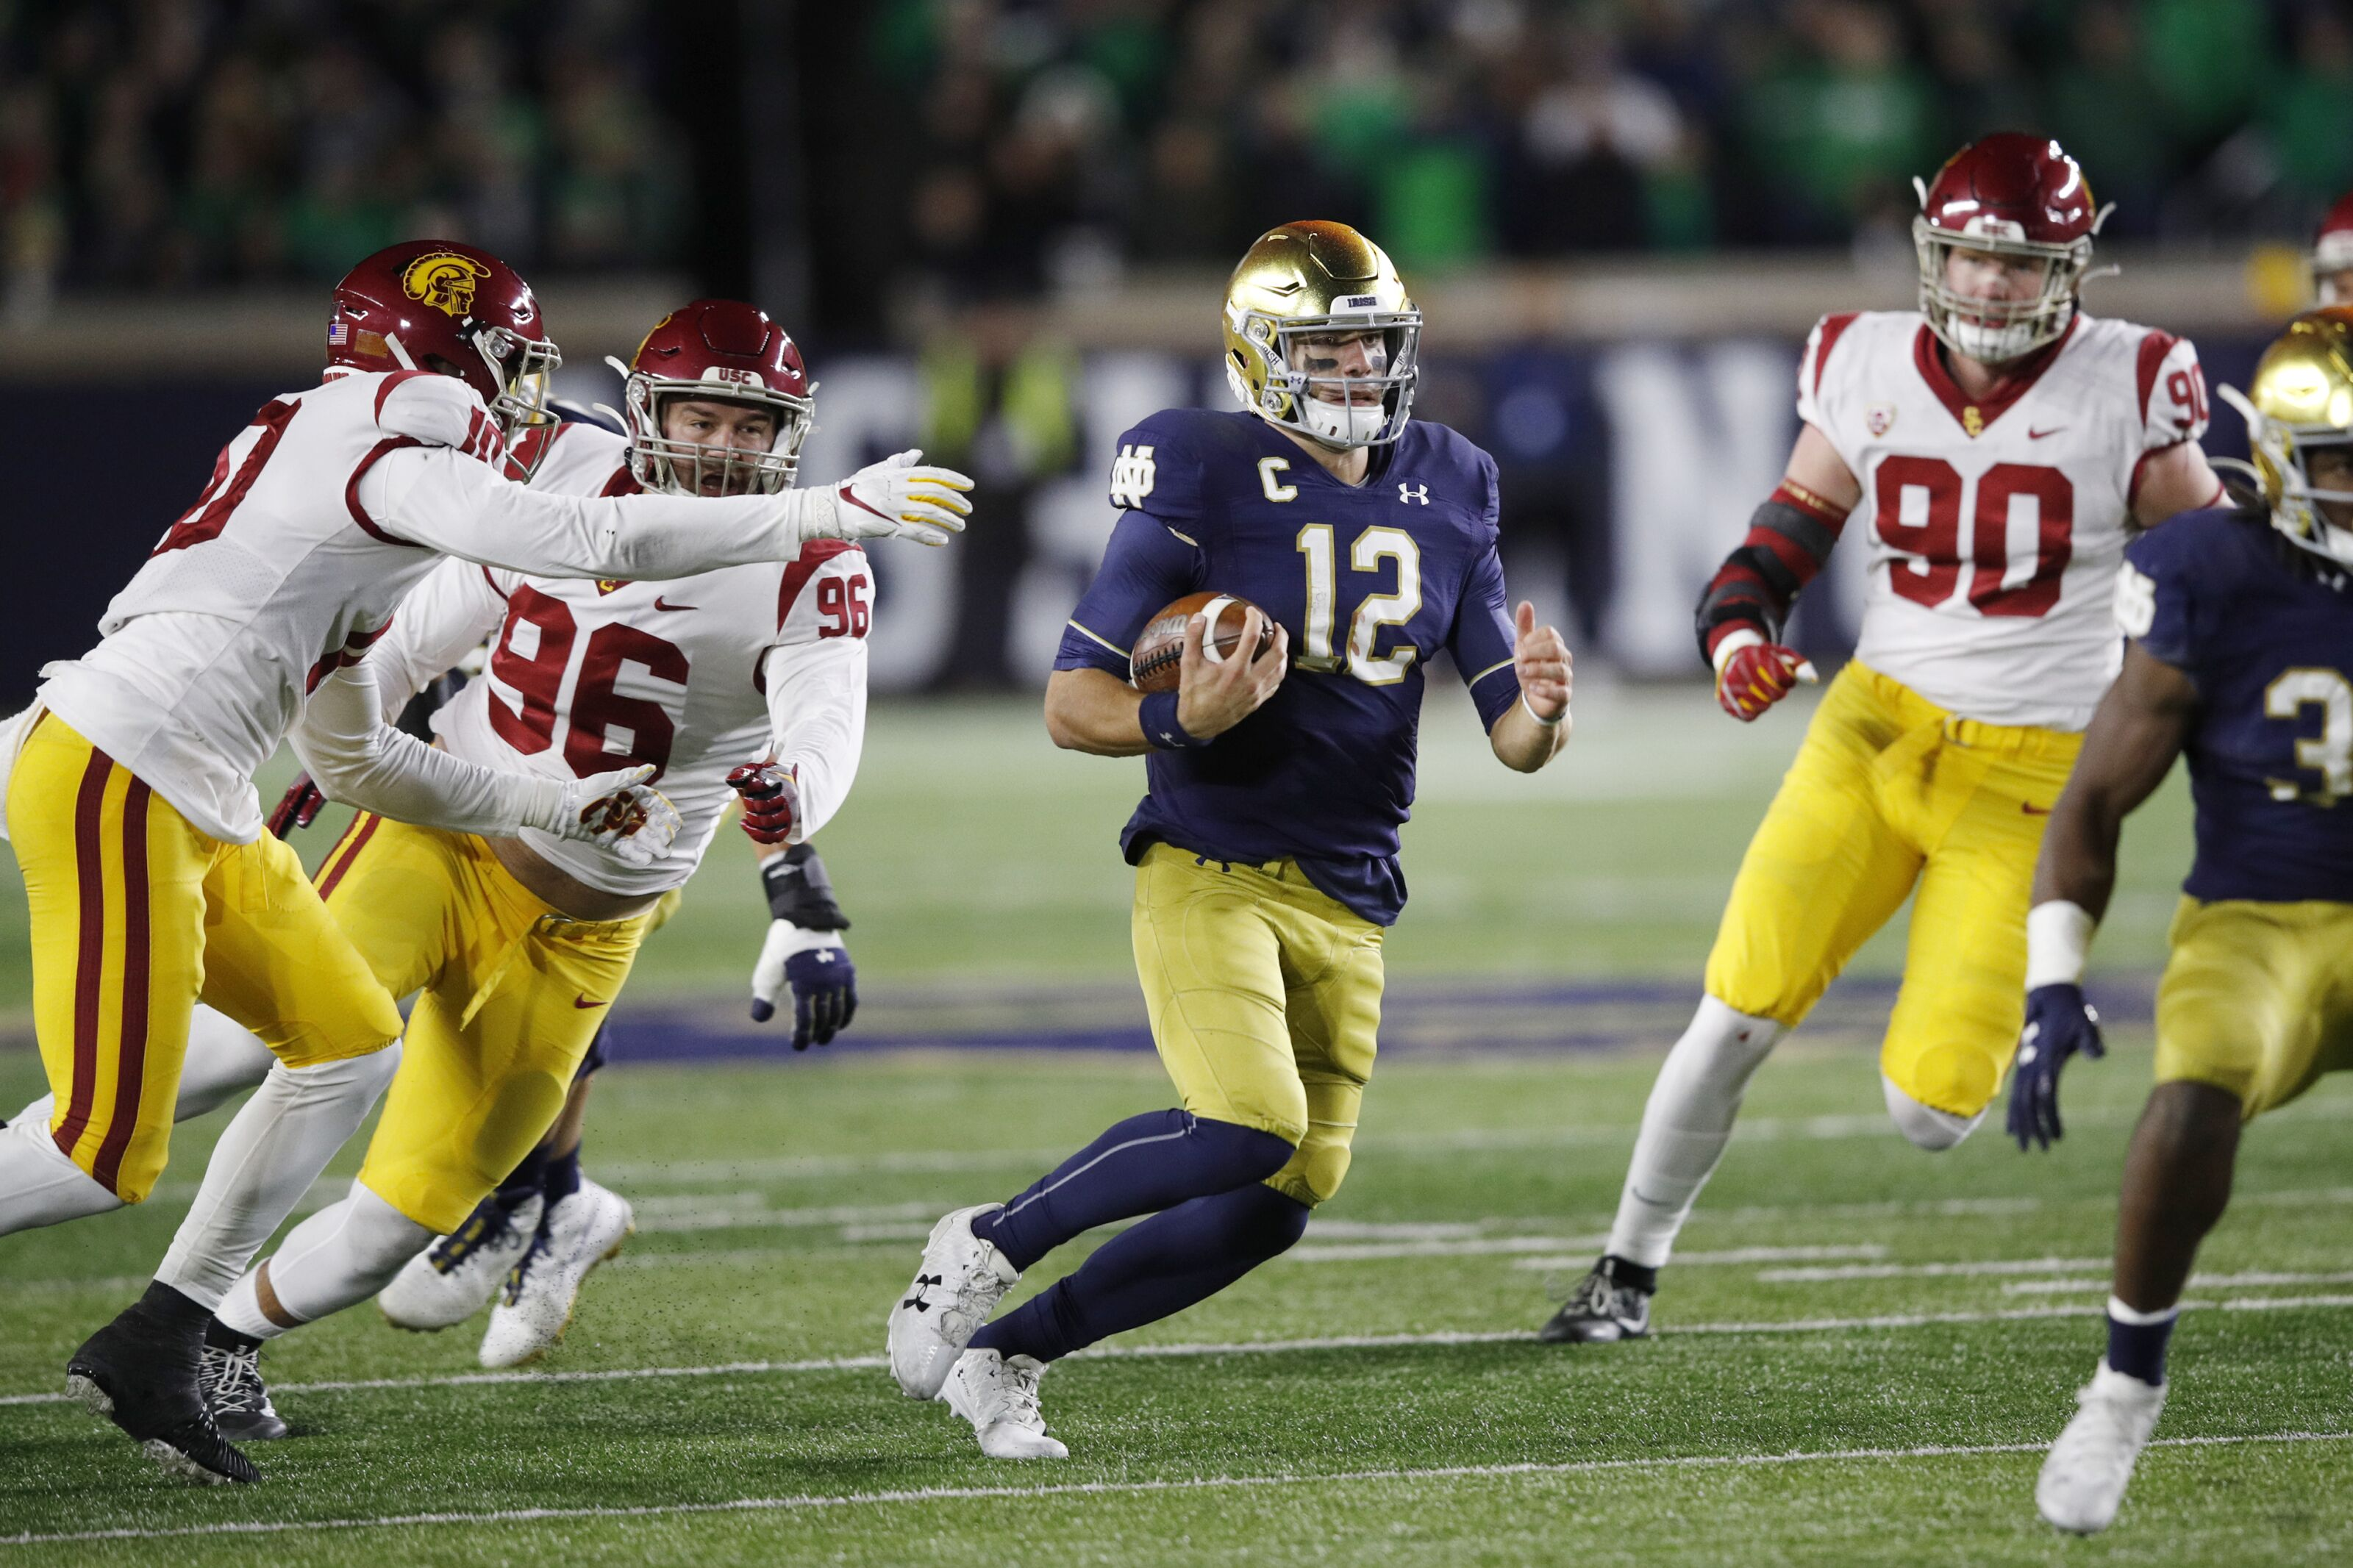 Notre Dame Football: Report card for win over USC in Week 8